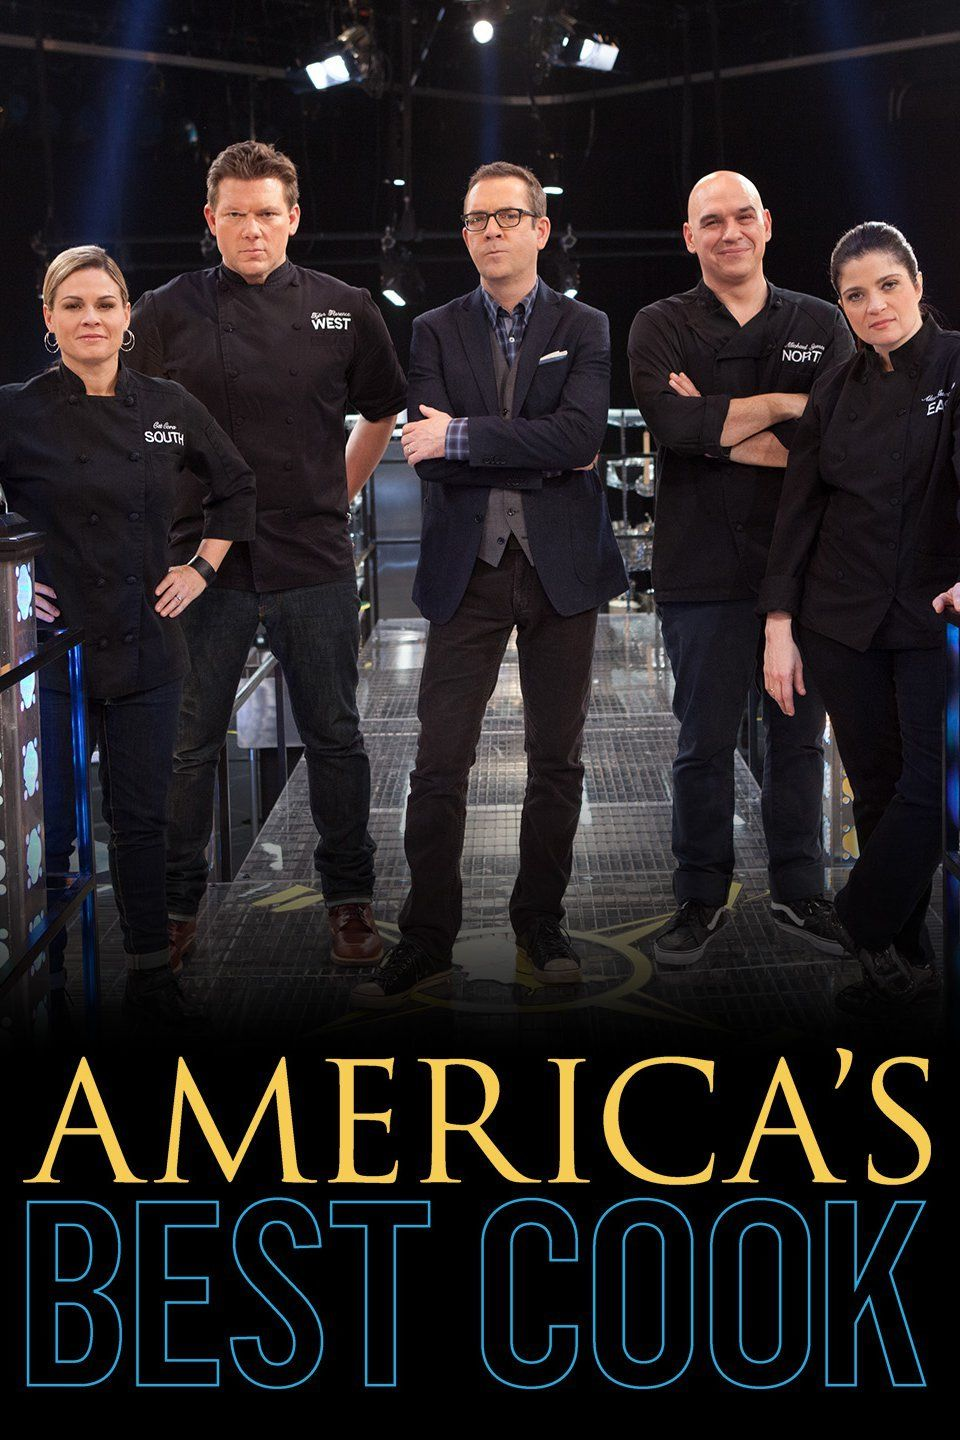 America's Best Cook cover